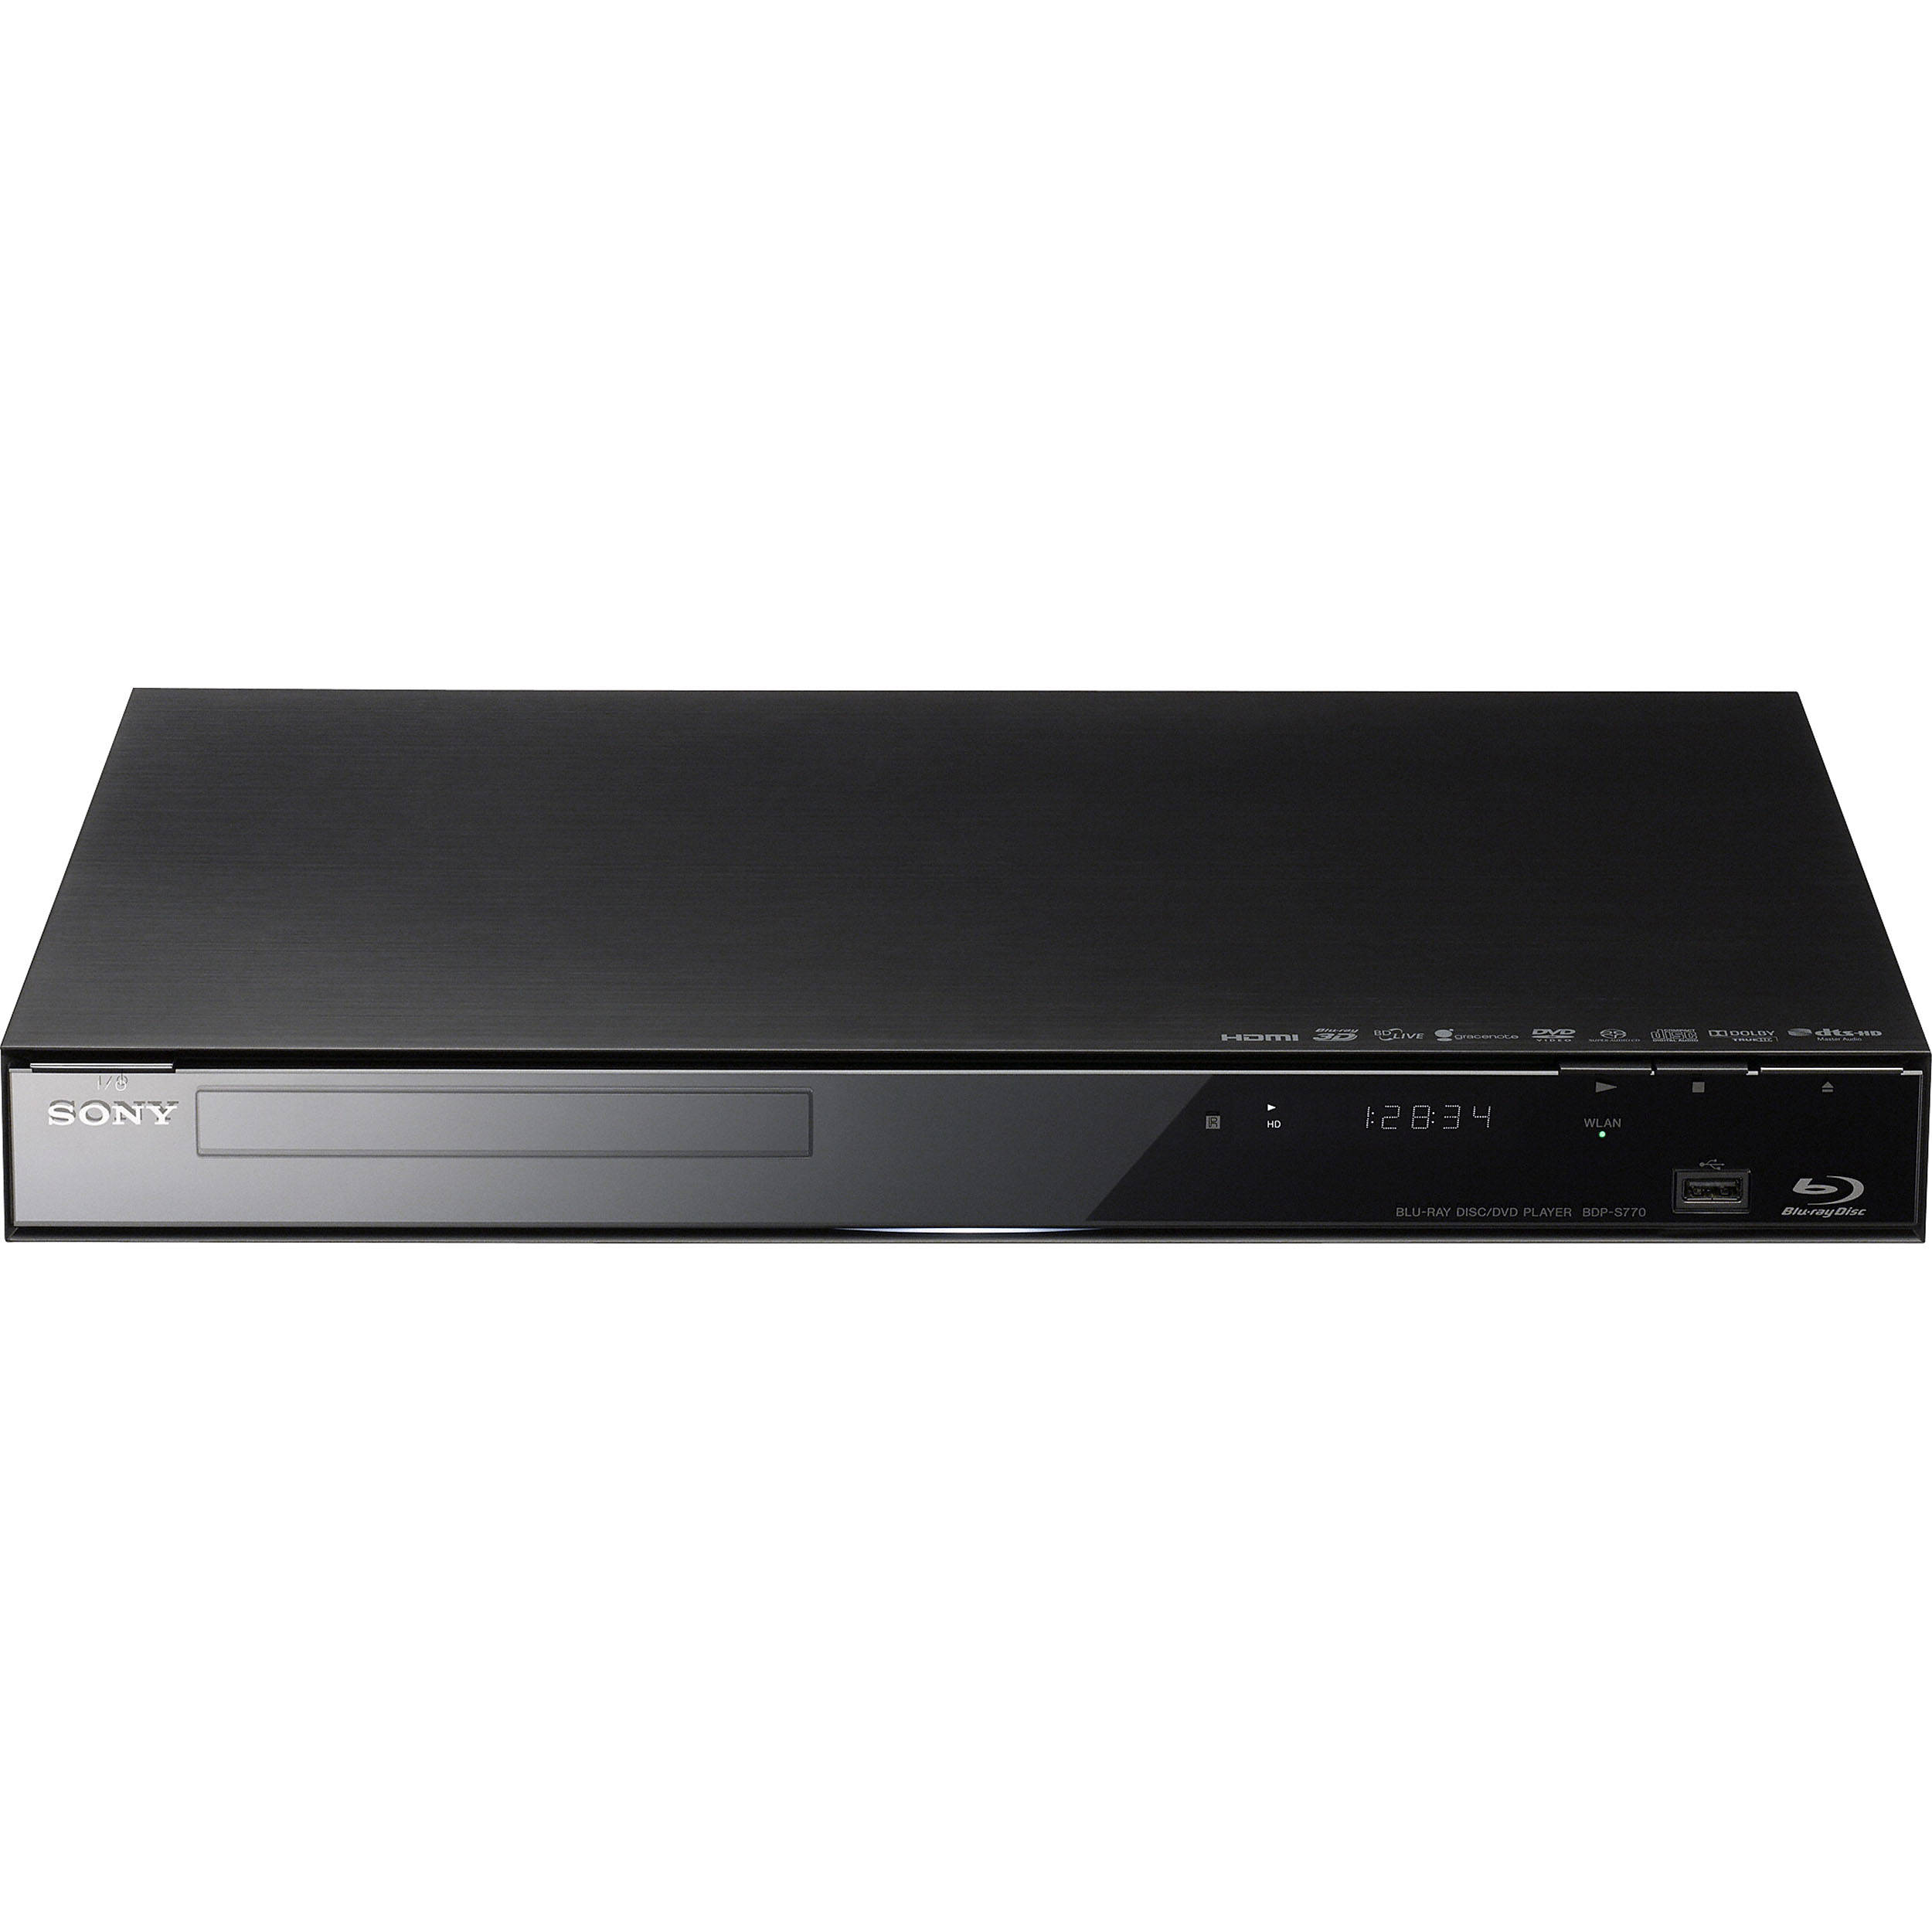 sony bdp s770 3d blu ray disc player with wi fi bdp s770 b h. Black Bedroom Furniture Sets. Home Design Ideas